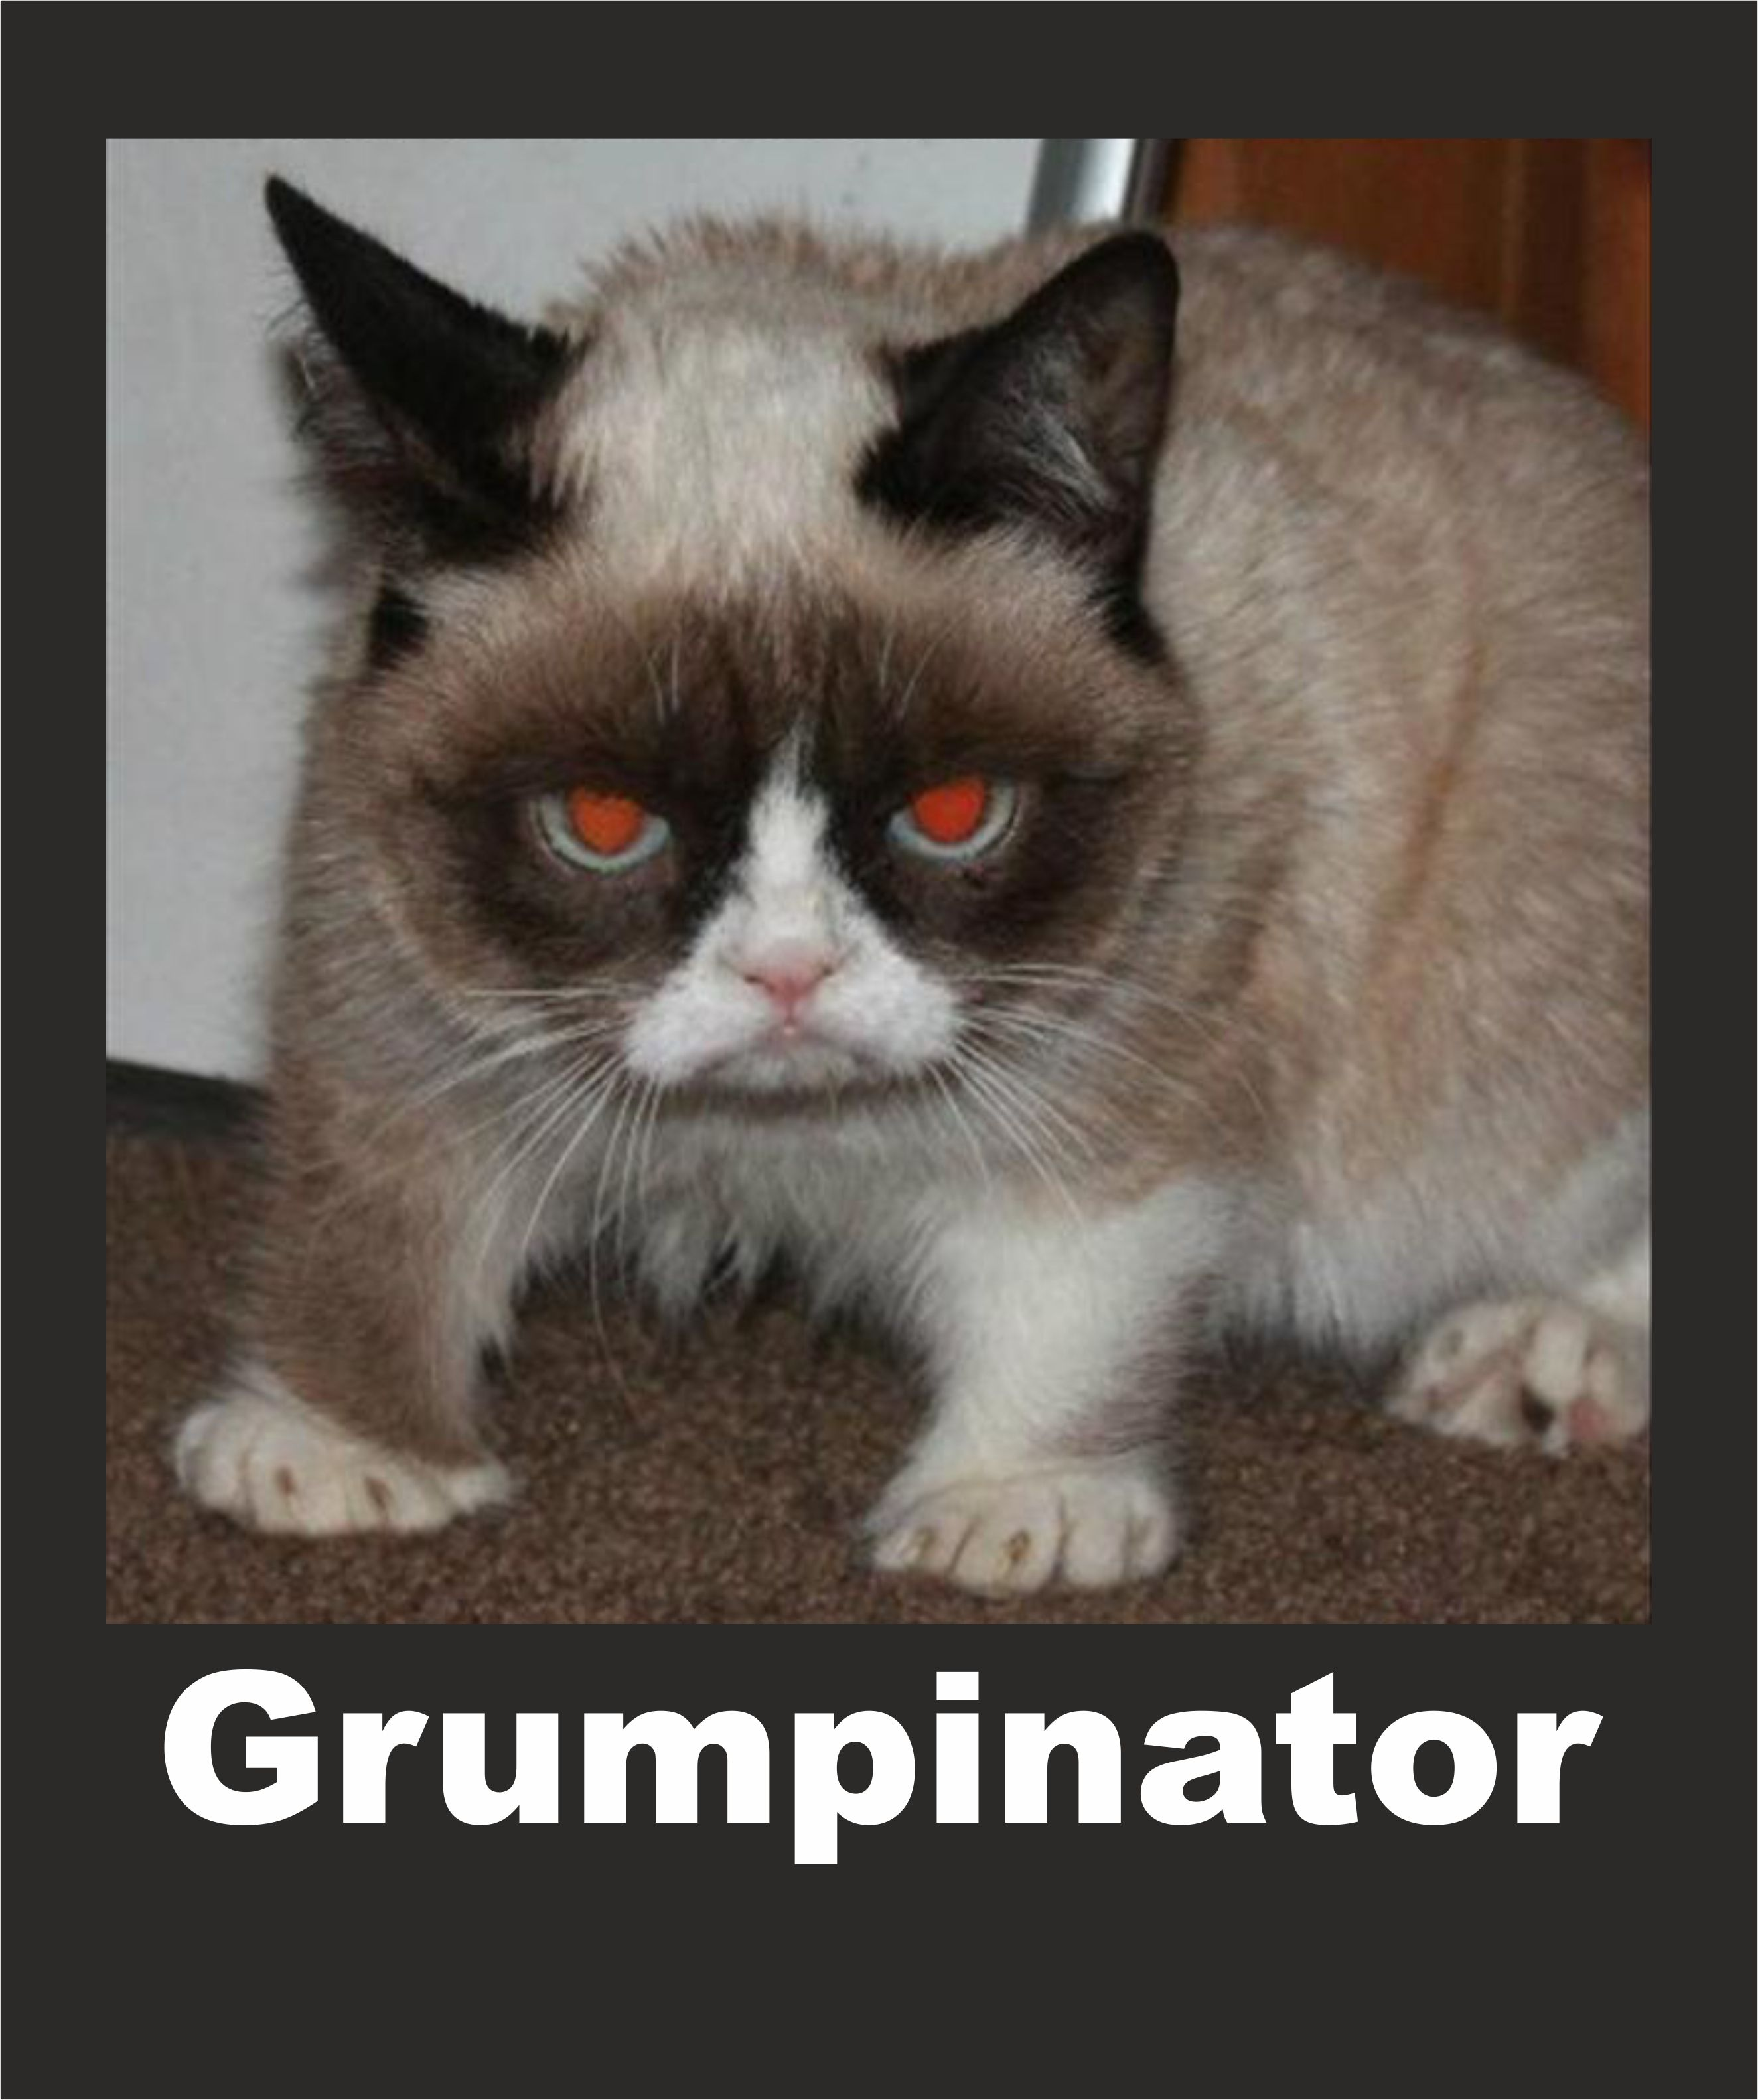 Pin By Brenda King Malone On Funny Things Cat Memes Clean Funny Cat Memes Grumpy Cat Memes Clean